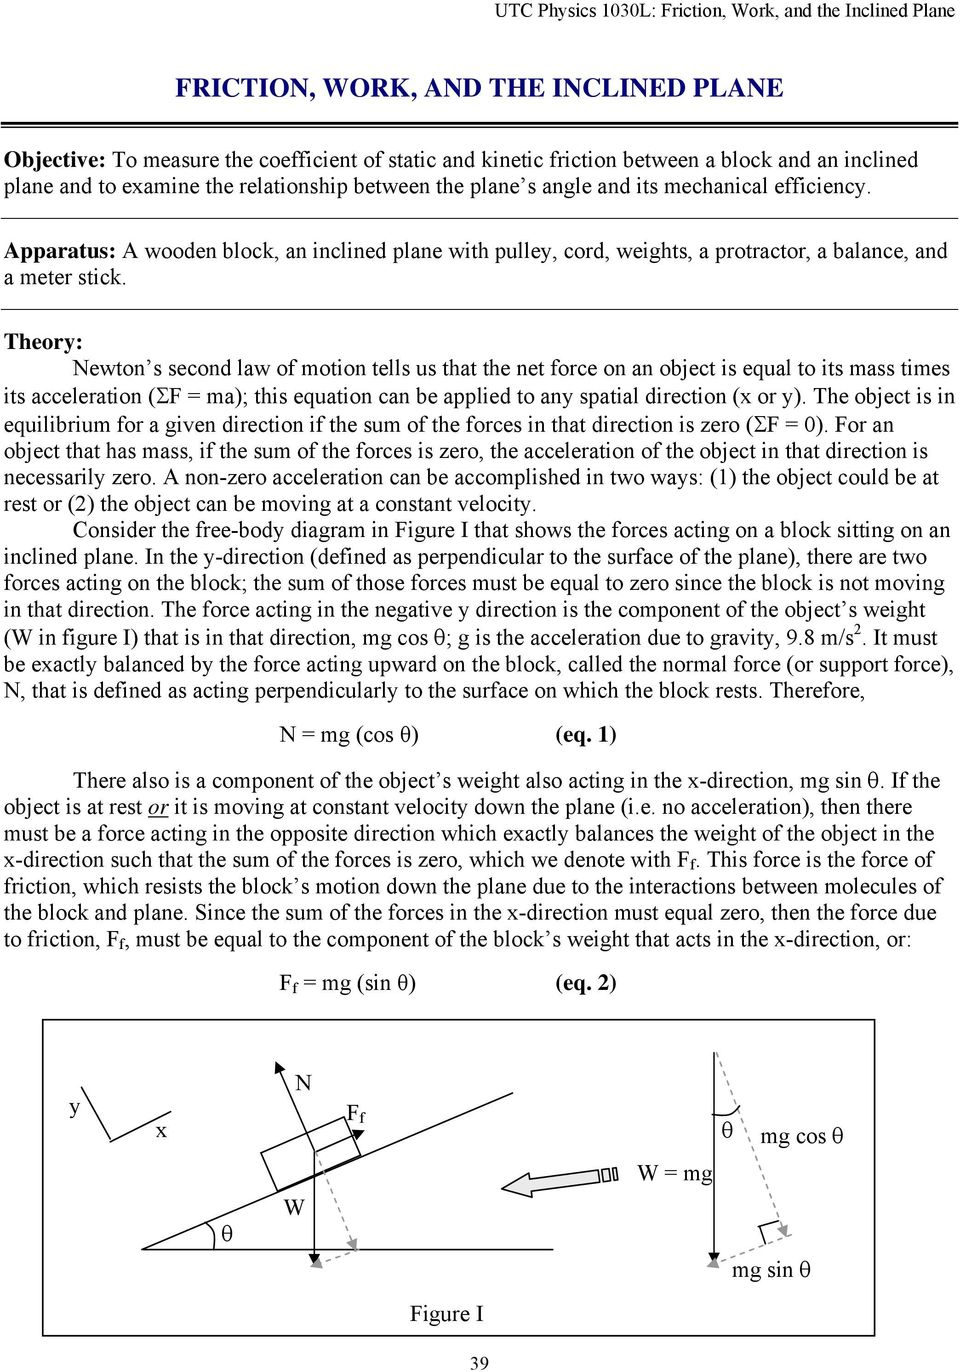 Theory: Newton s second law of motion tells us that the net force on an object is equal to its mass times its acceleration (ΣF = ma); this equation can be applied to any spatial direction (x or y).